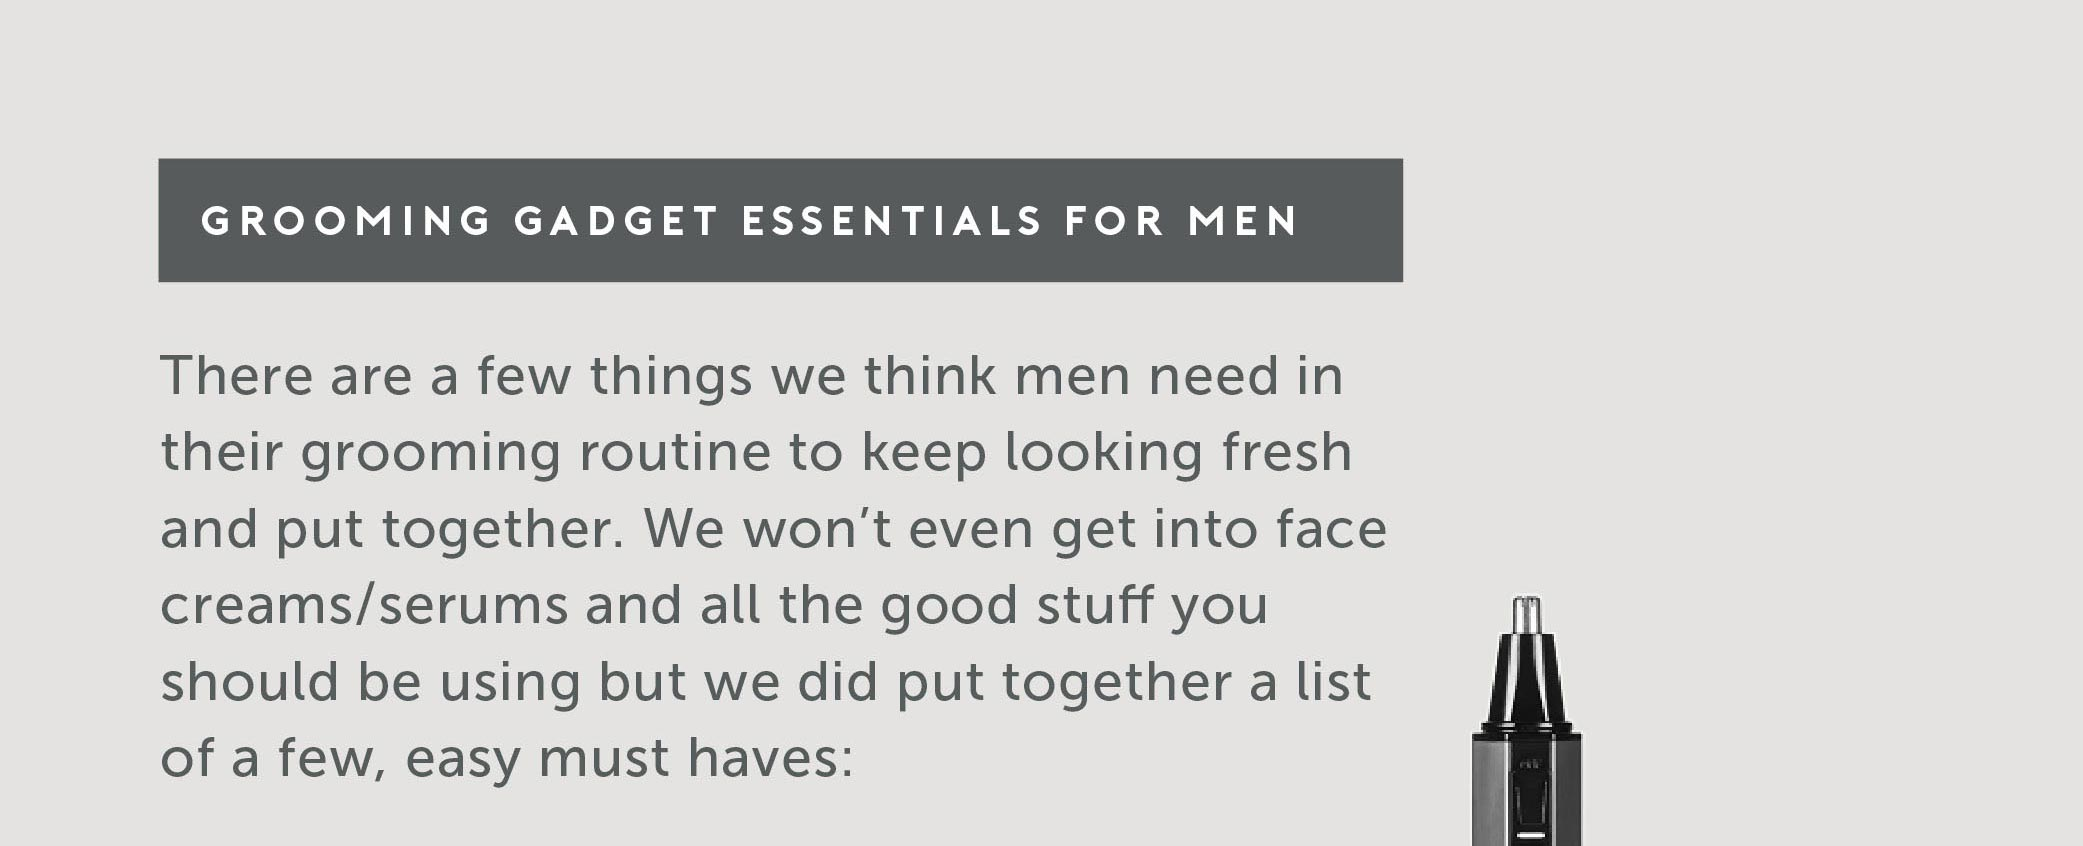 Grooming Gadget Essentials for Men There are a few things we think men need in their grooming routine to keep looking fresh and put together. We won't even get into face creams/serums and all the good stuff you should be using but we did put together a list of a few, easy must haves: